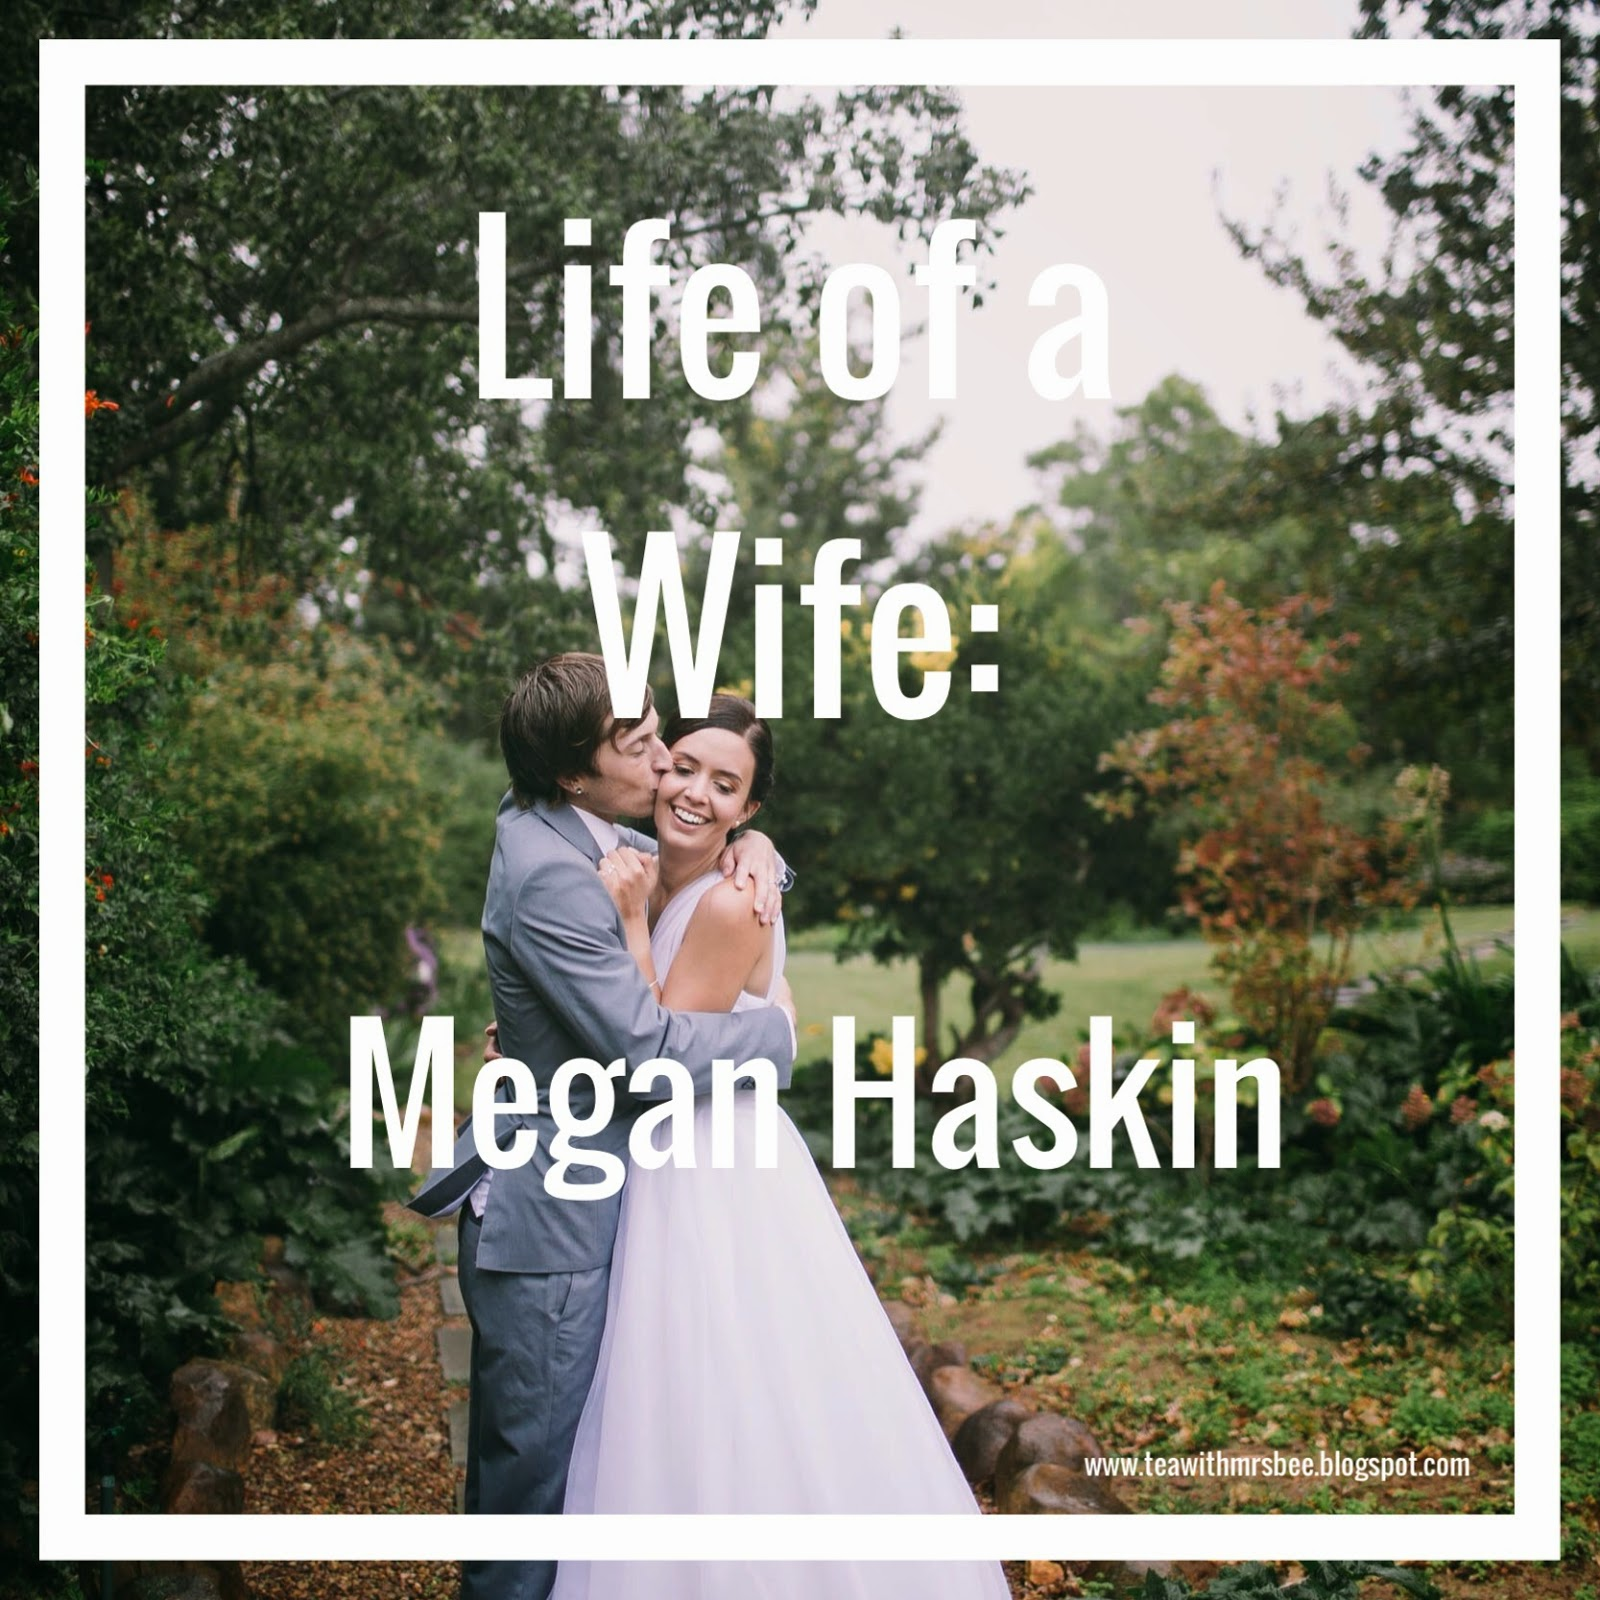 #LifeofaWife: Megan Haskin - advice & insight on marriage from fellow wives